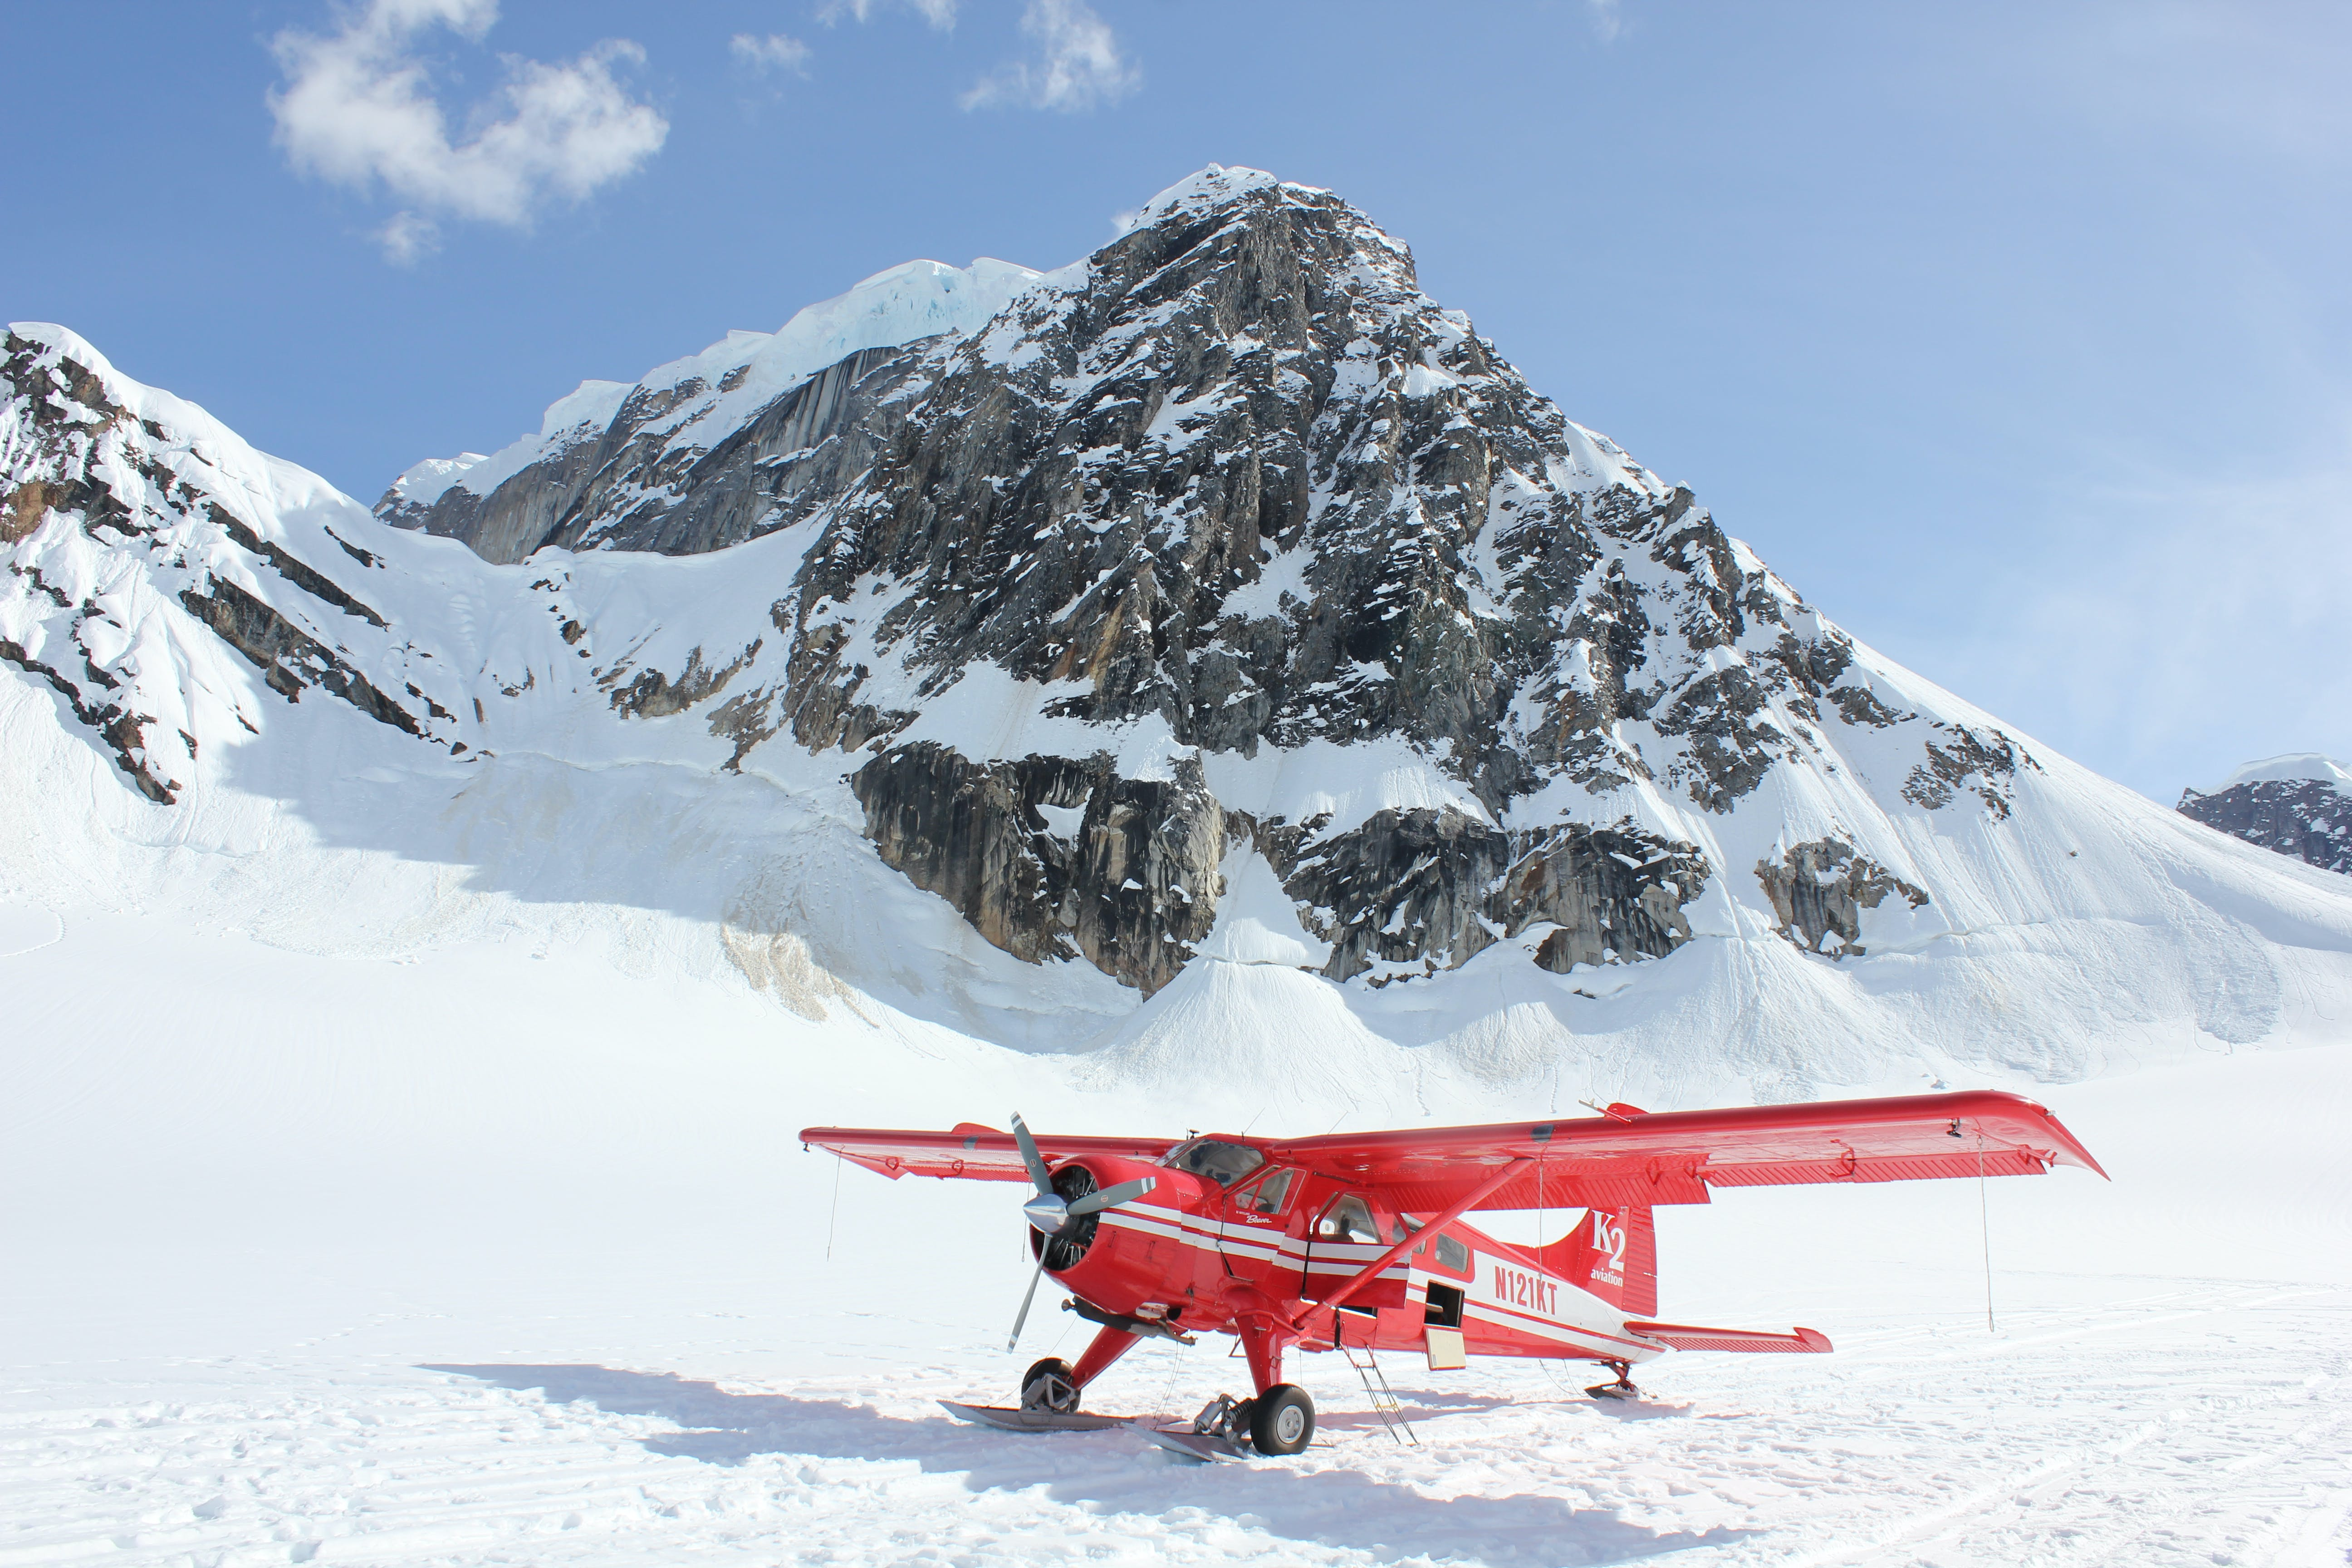 Red Monoplane in Alps